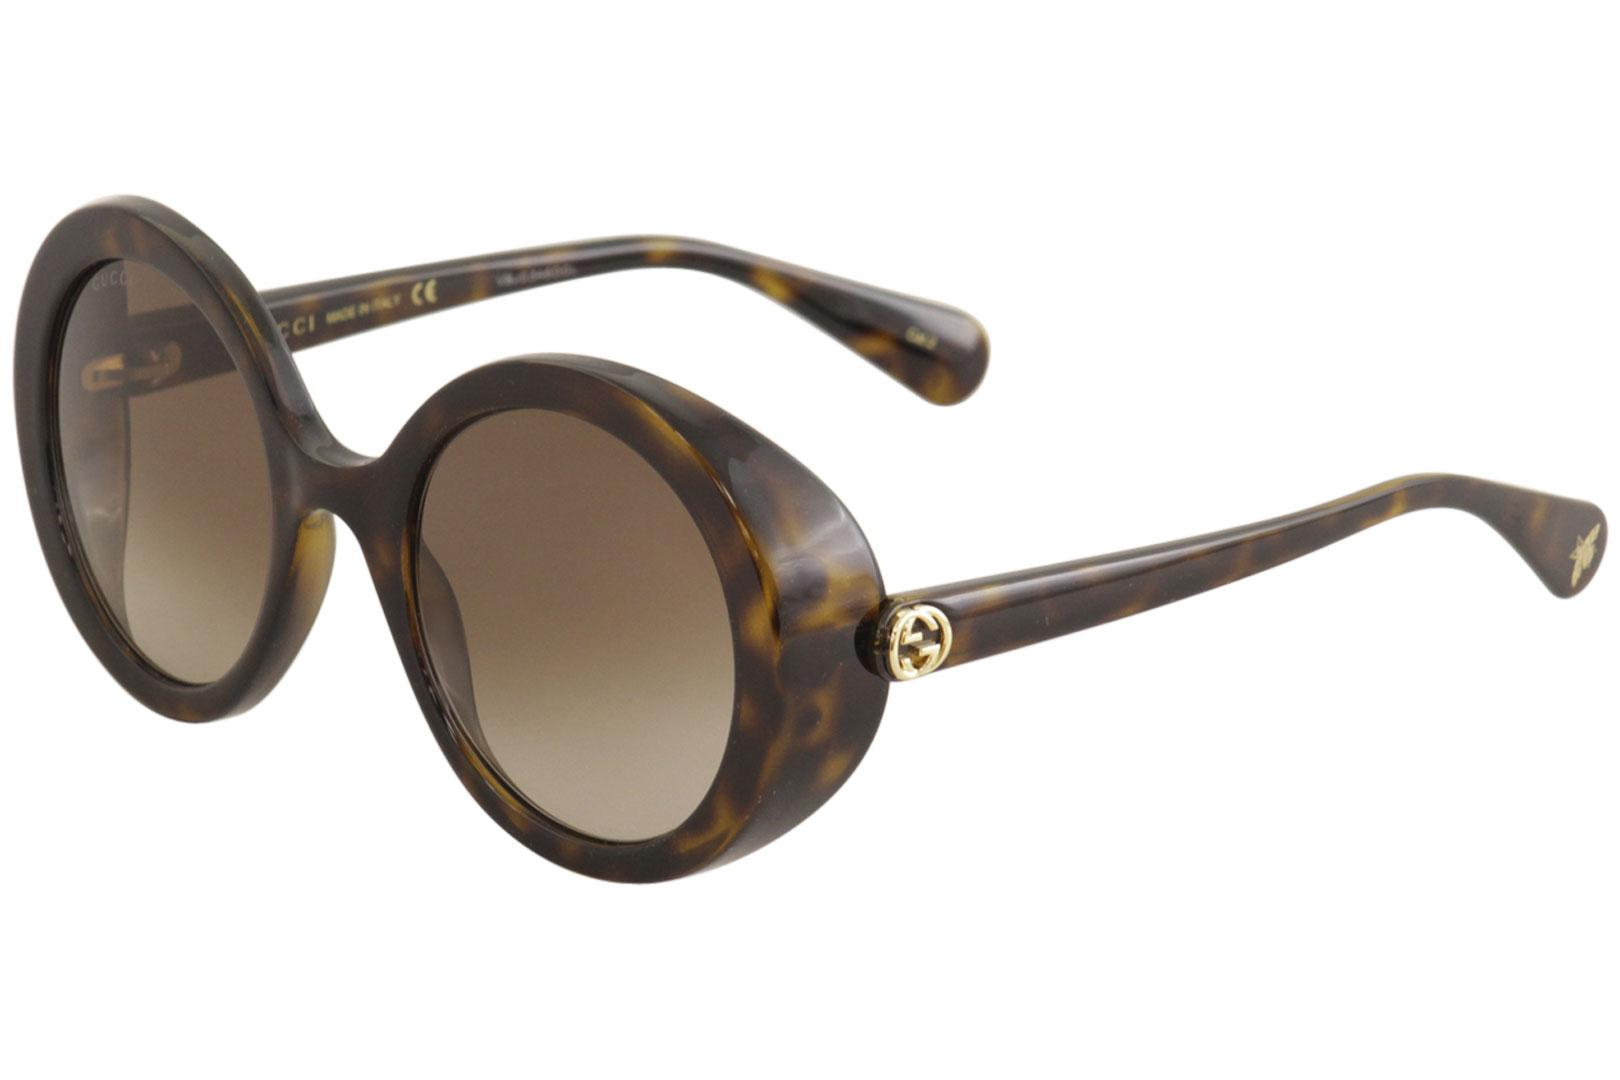 d5403eec524 Gucci Women s GG0367S GG 0367 S Fashion Round Sunglasses